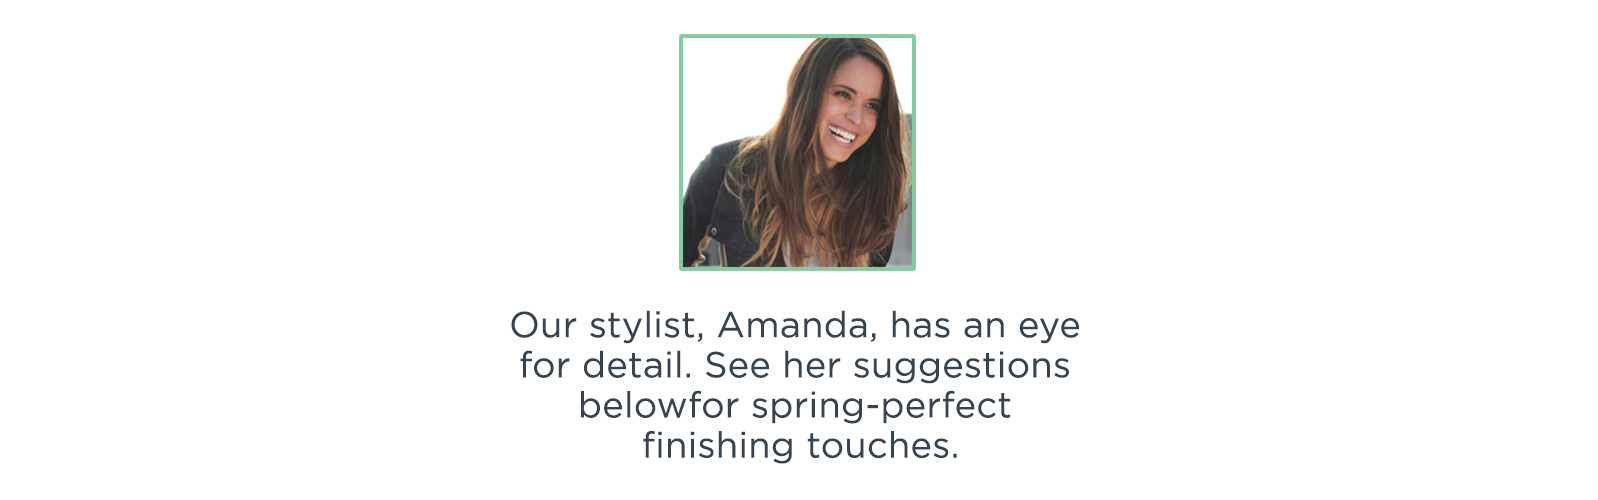 Our stylist, Amanda, has an eye for detail. See her suggestions below for spring-perfect finishing touches.